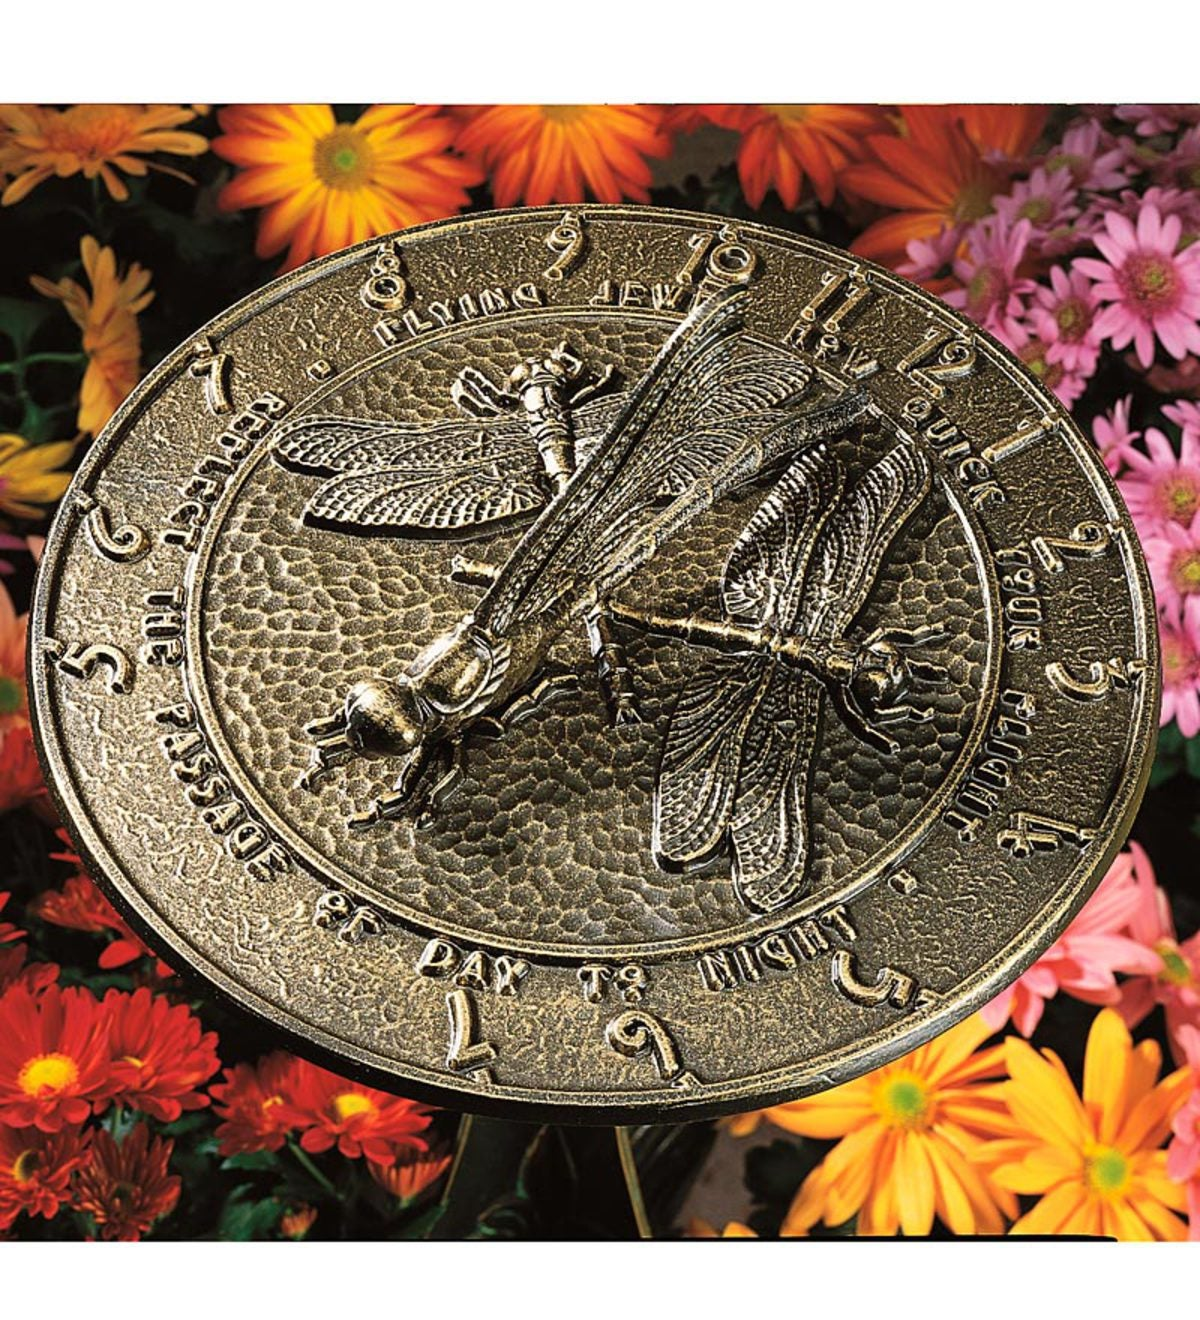 Made in America Recycled Aluminum Dragonfly Sundial